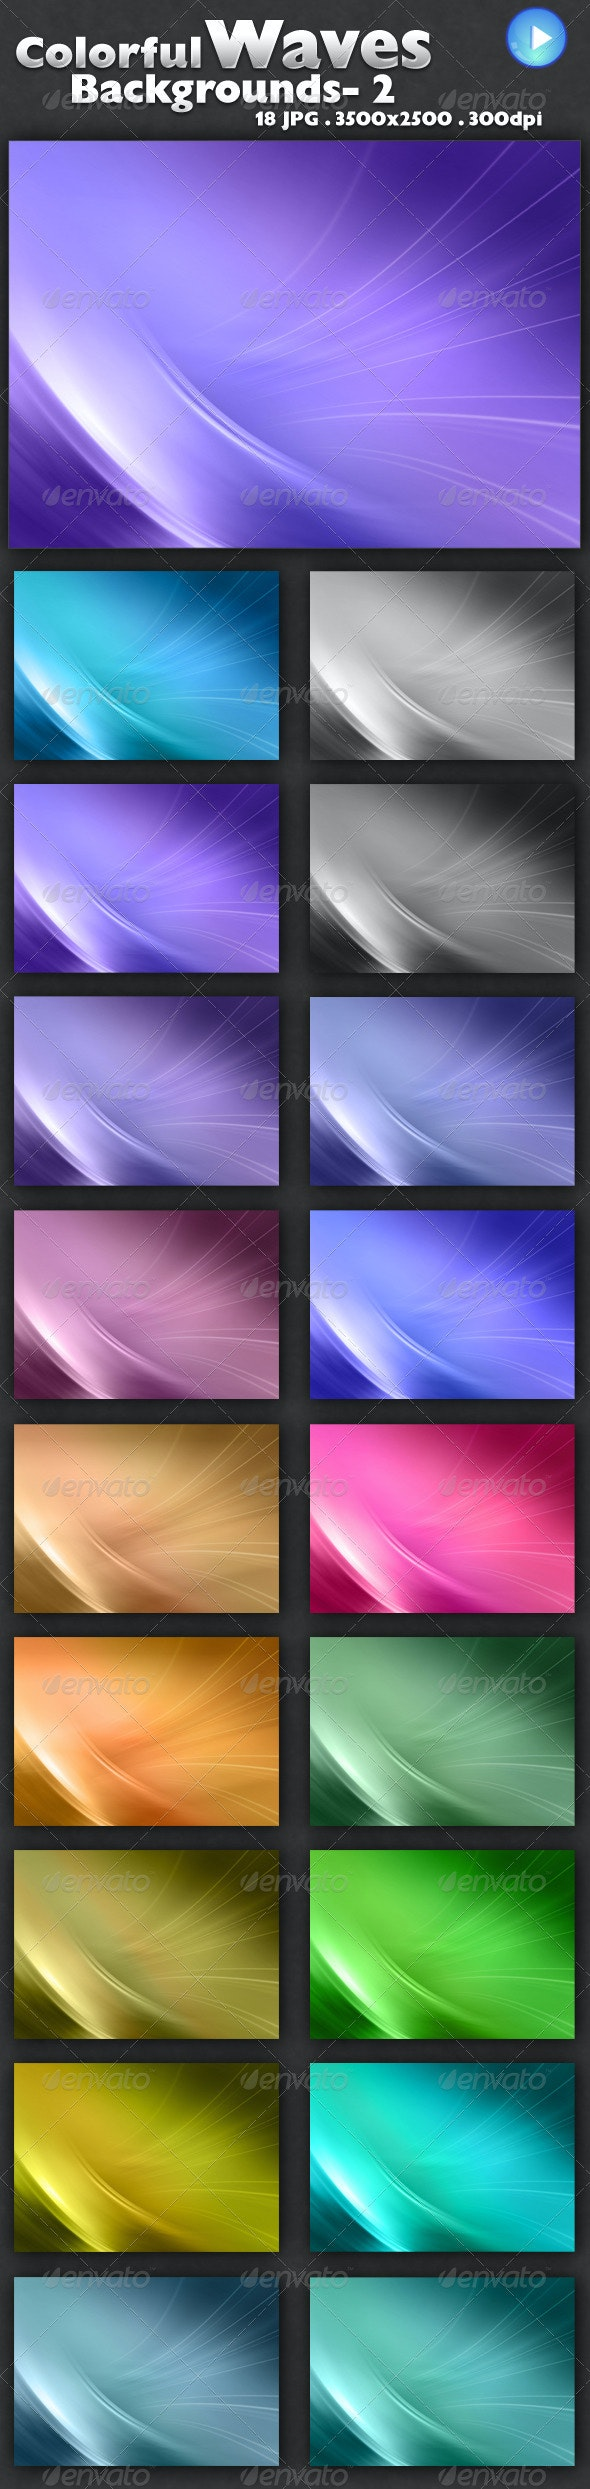 Colorful Waves Backgrounds 2 - Backgrounds Graphics